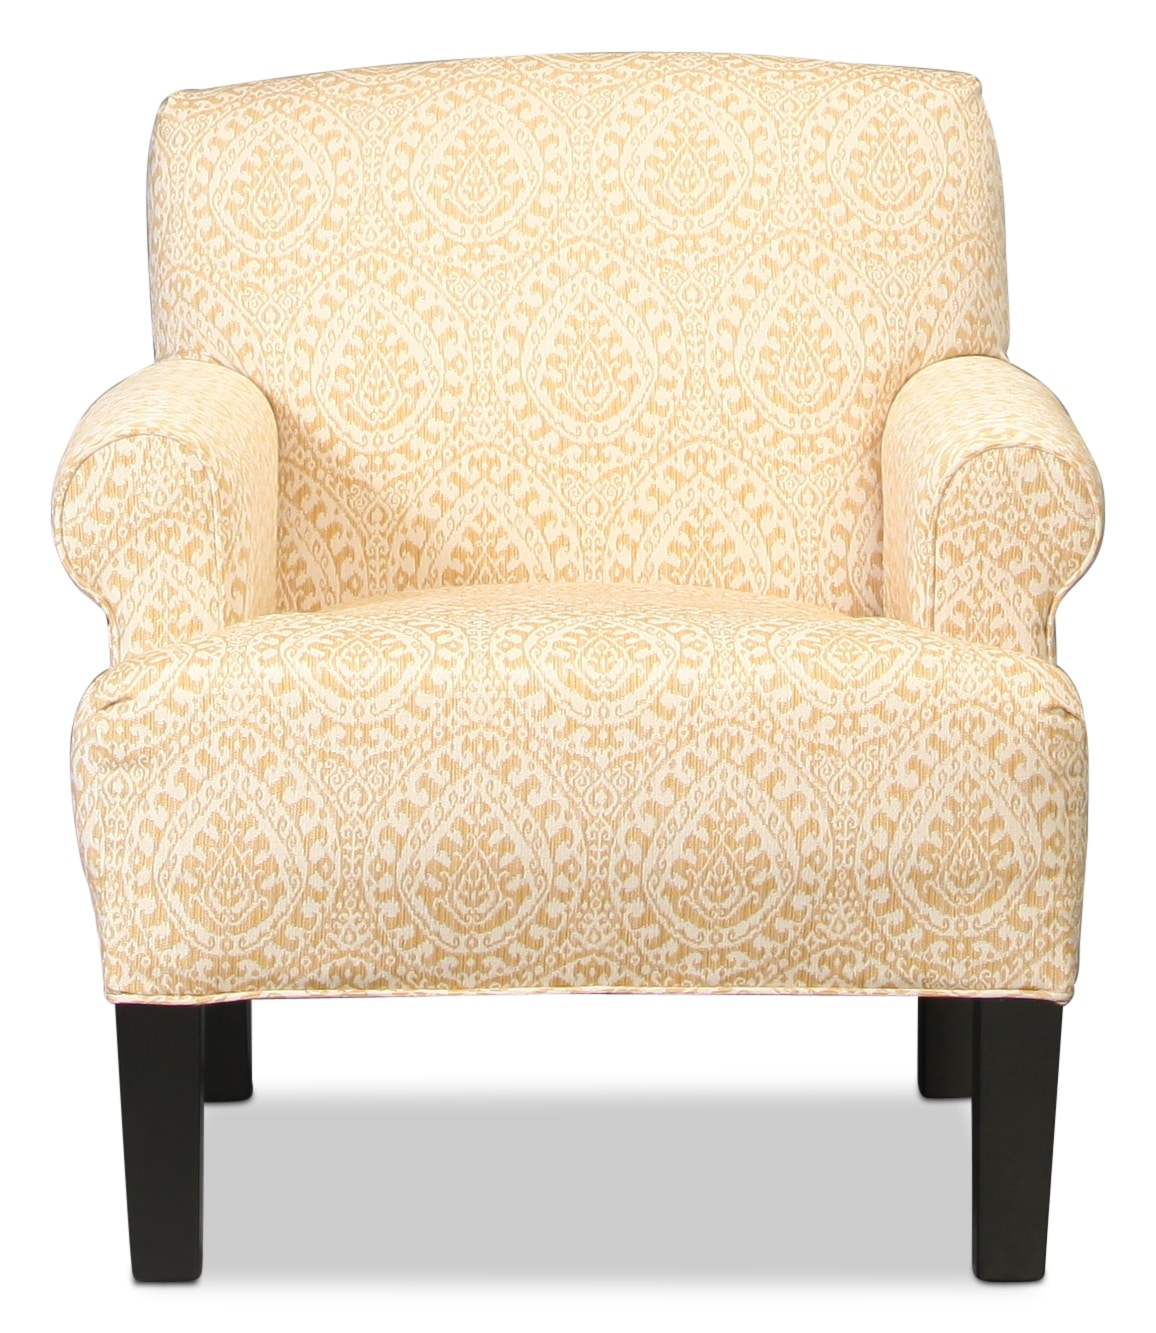 The Montecito Accent Chair